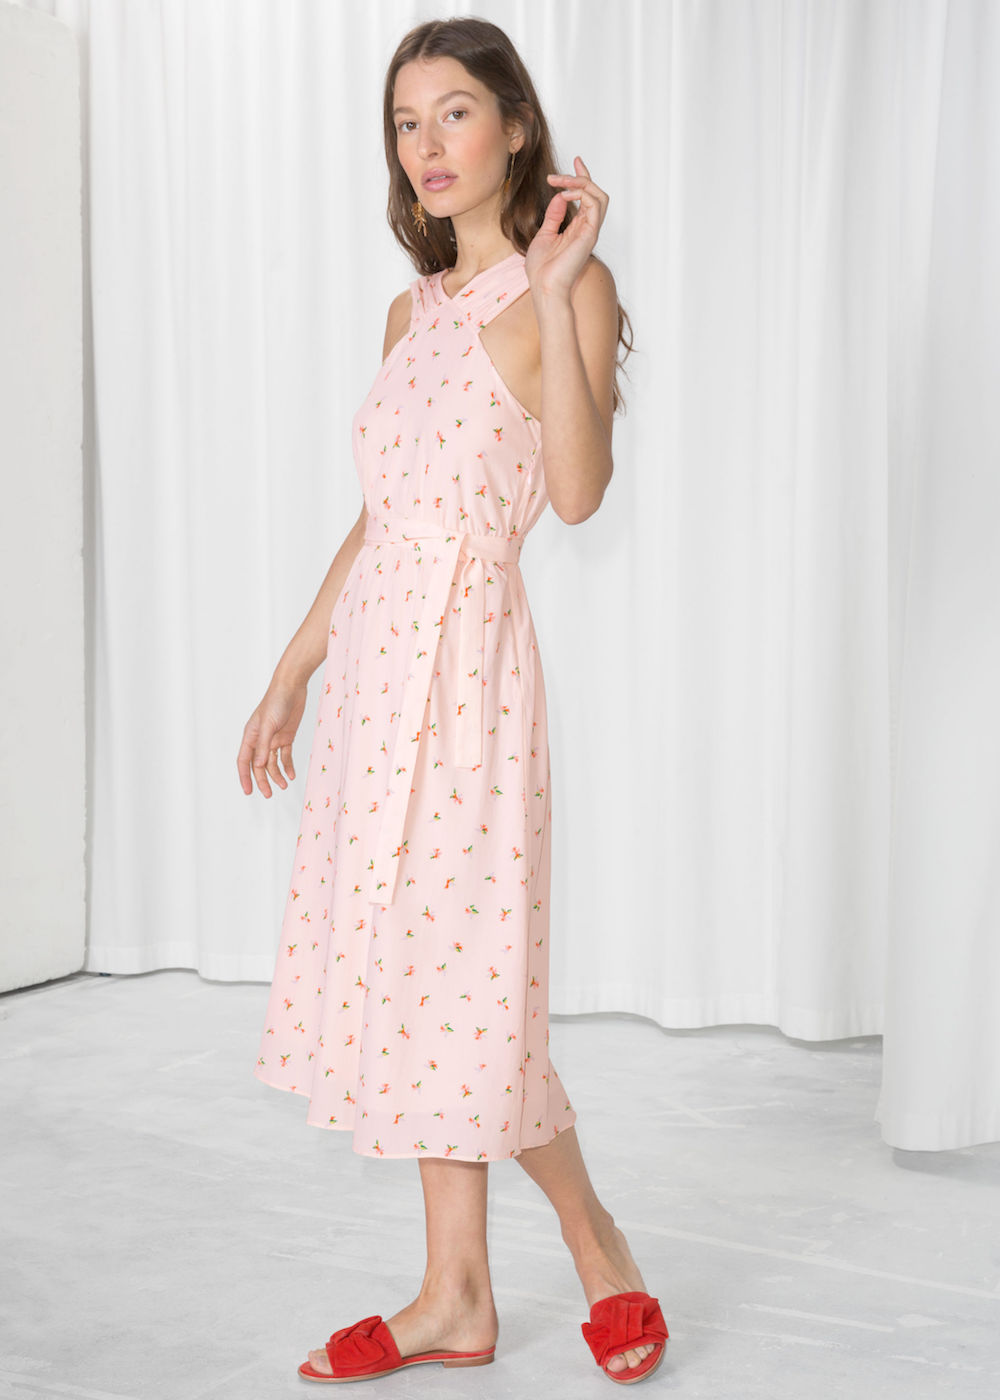 & Other Stories  25 Statement-Making Spring Dresses Under $100 Other Stories Cross Front Dress